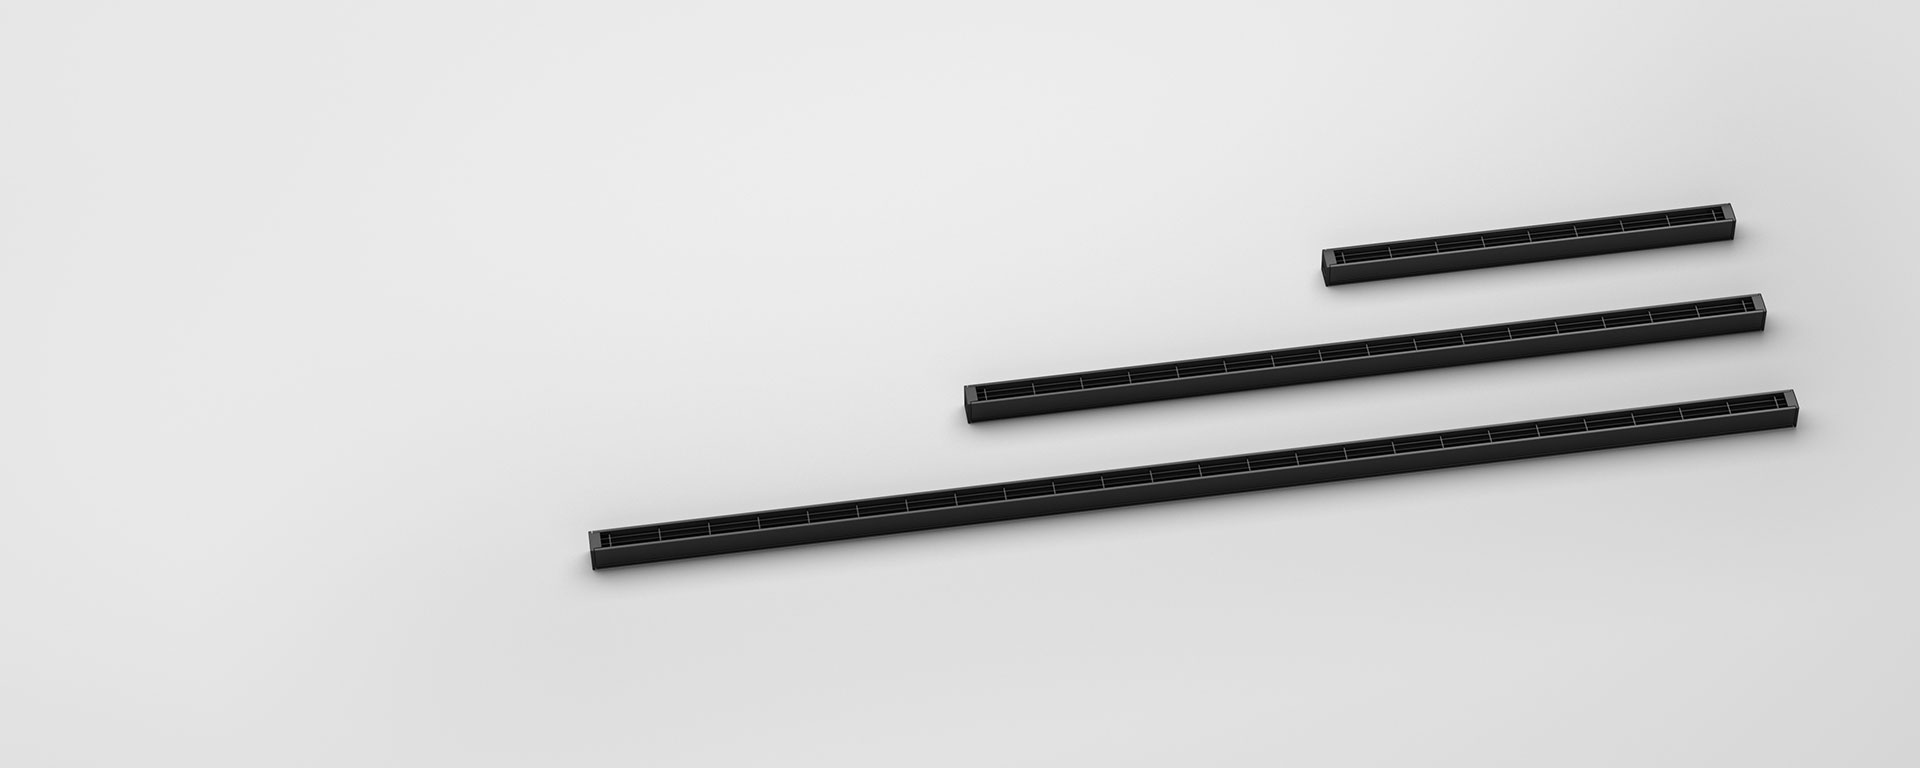 Highly versatile length options allow the user to achieve accurate and adaptable lengths. Forma can achieve any desired length in 37.5mm increments.